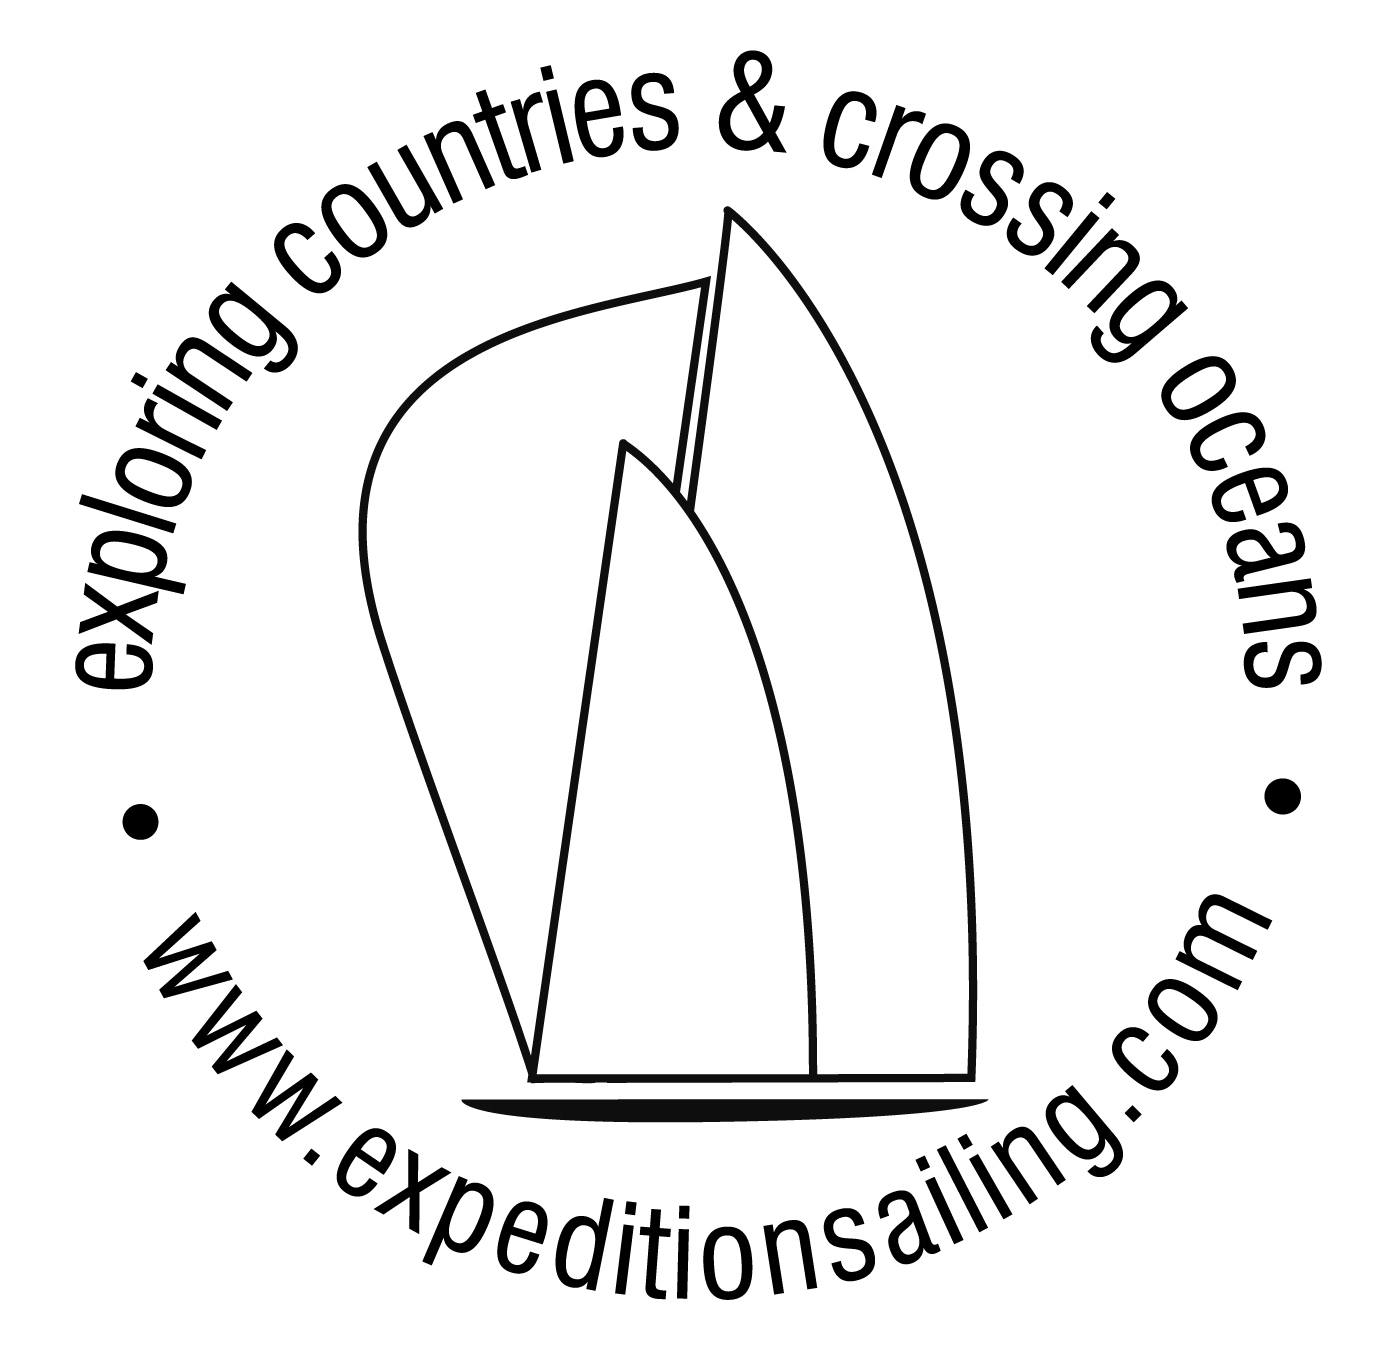 expeditionsailing